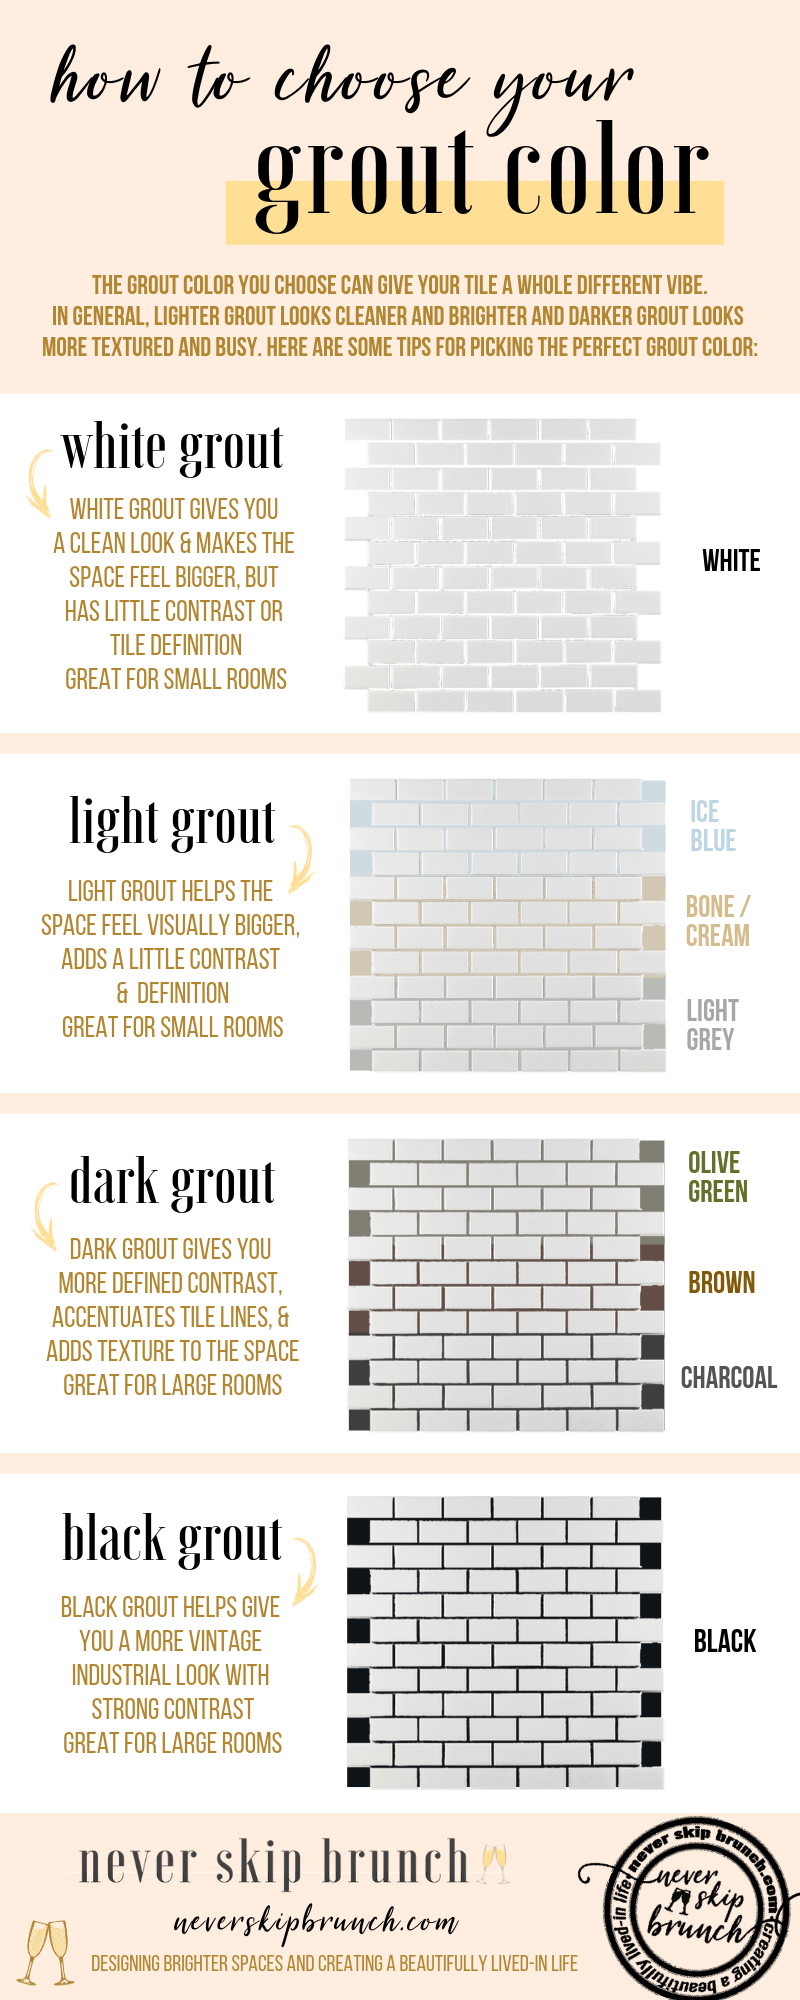 how to choose grout color | charcoal grout | grout colors for white tile | grout colors for white subway tile | dark grey grout for subway tile | grout refresh | change grout color subway tile | Never Skip Brunch by Cara Newhart | #livingroom #home #decor #neverskipbrunch